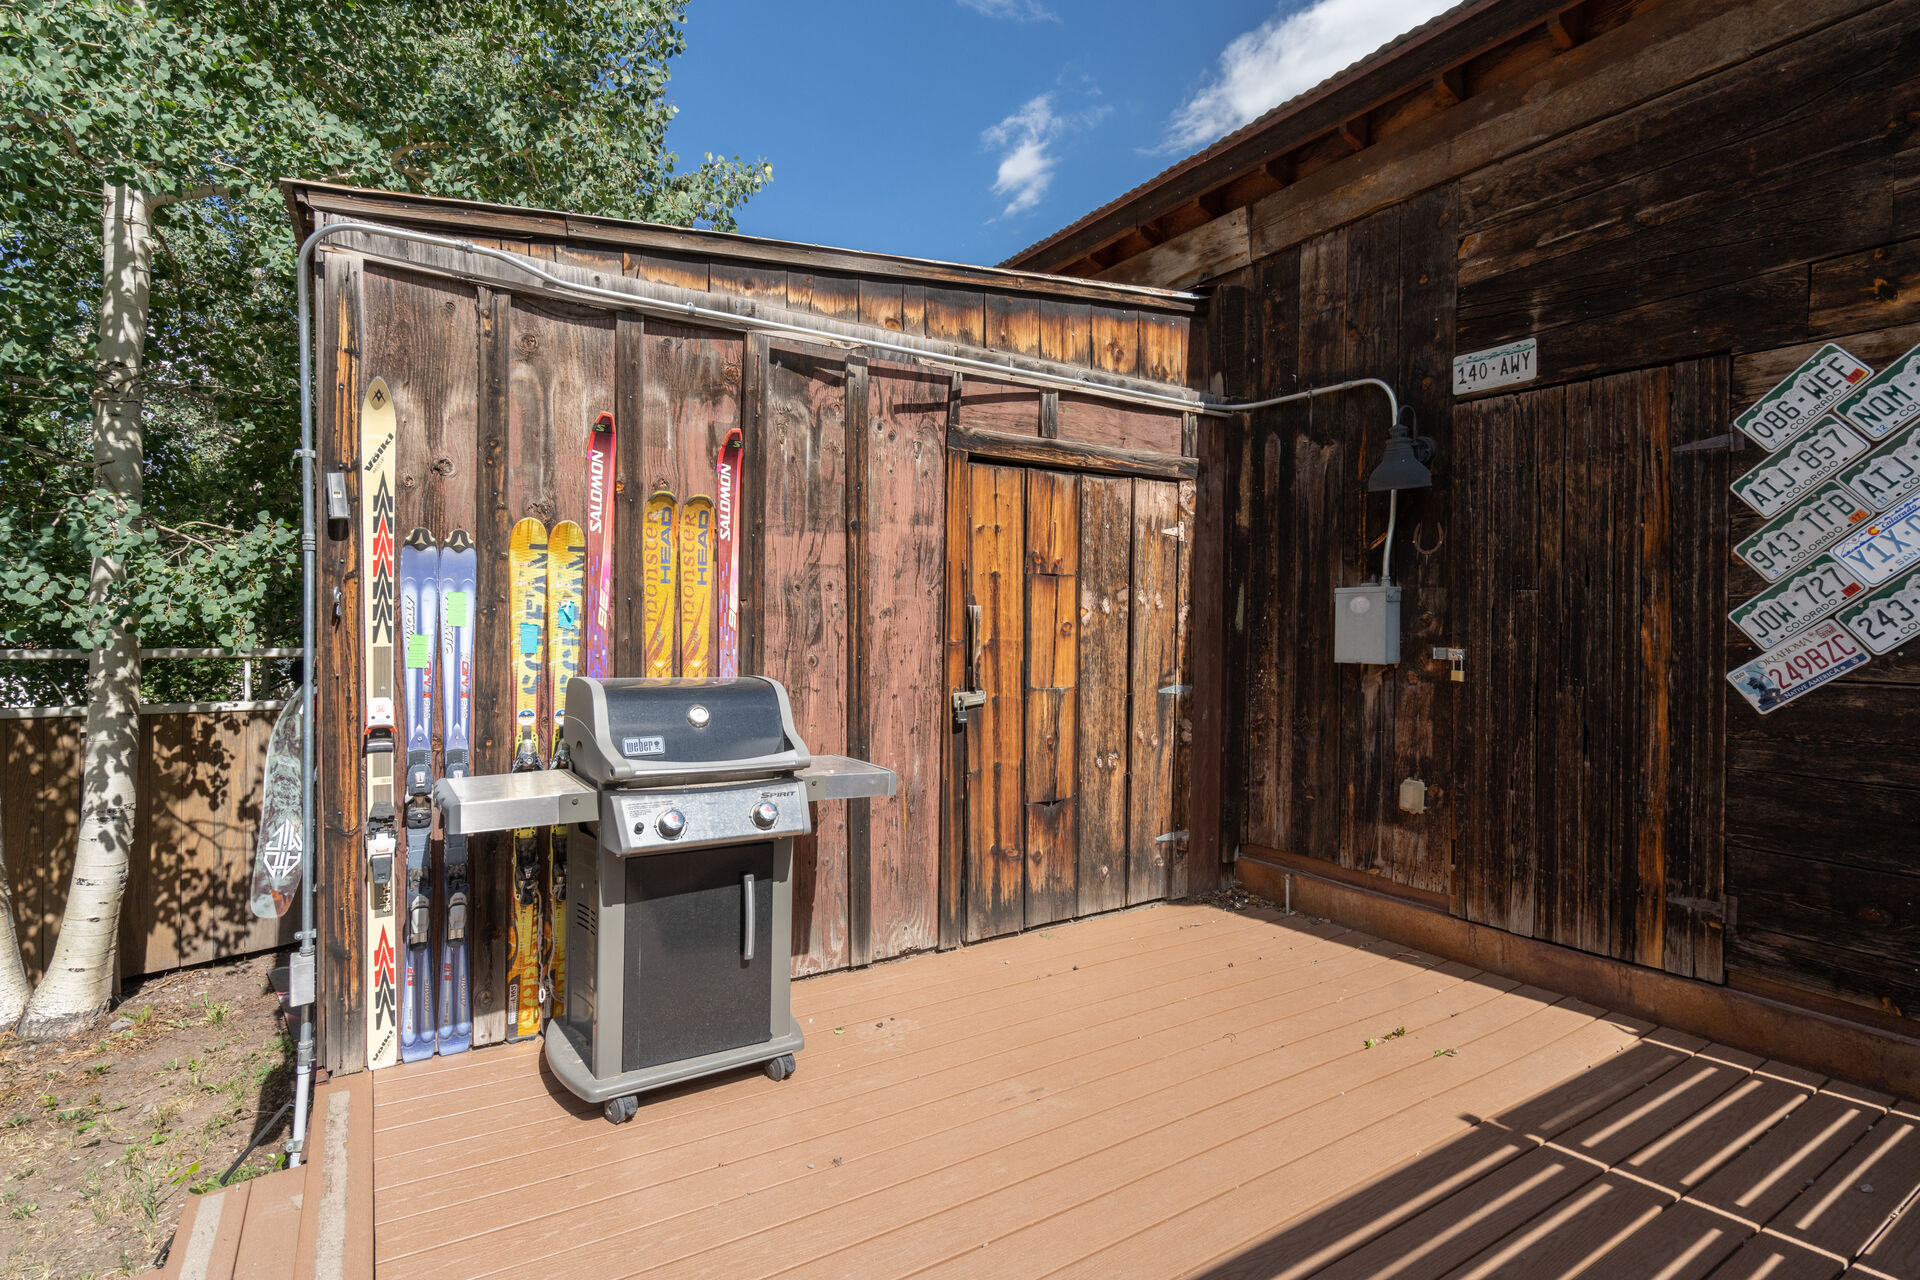 The grill by the shed of this holiday home in Telluride.